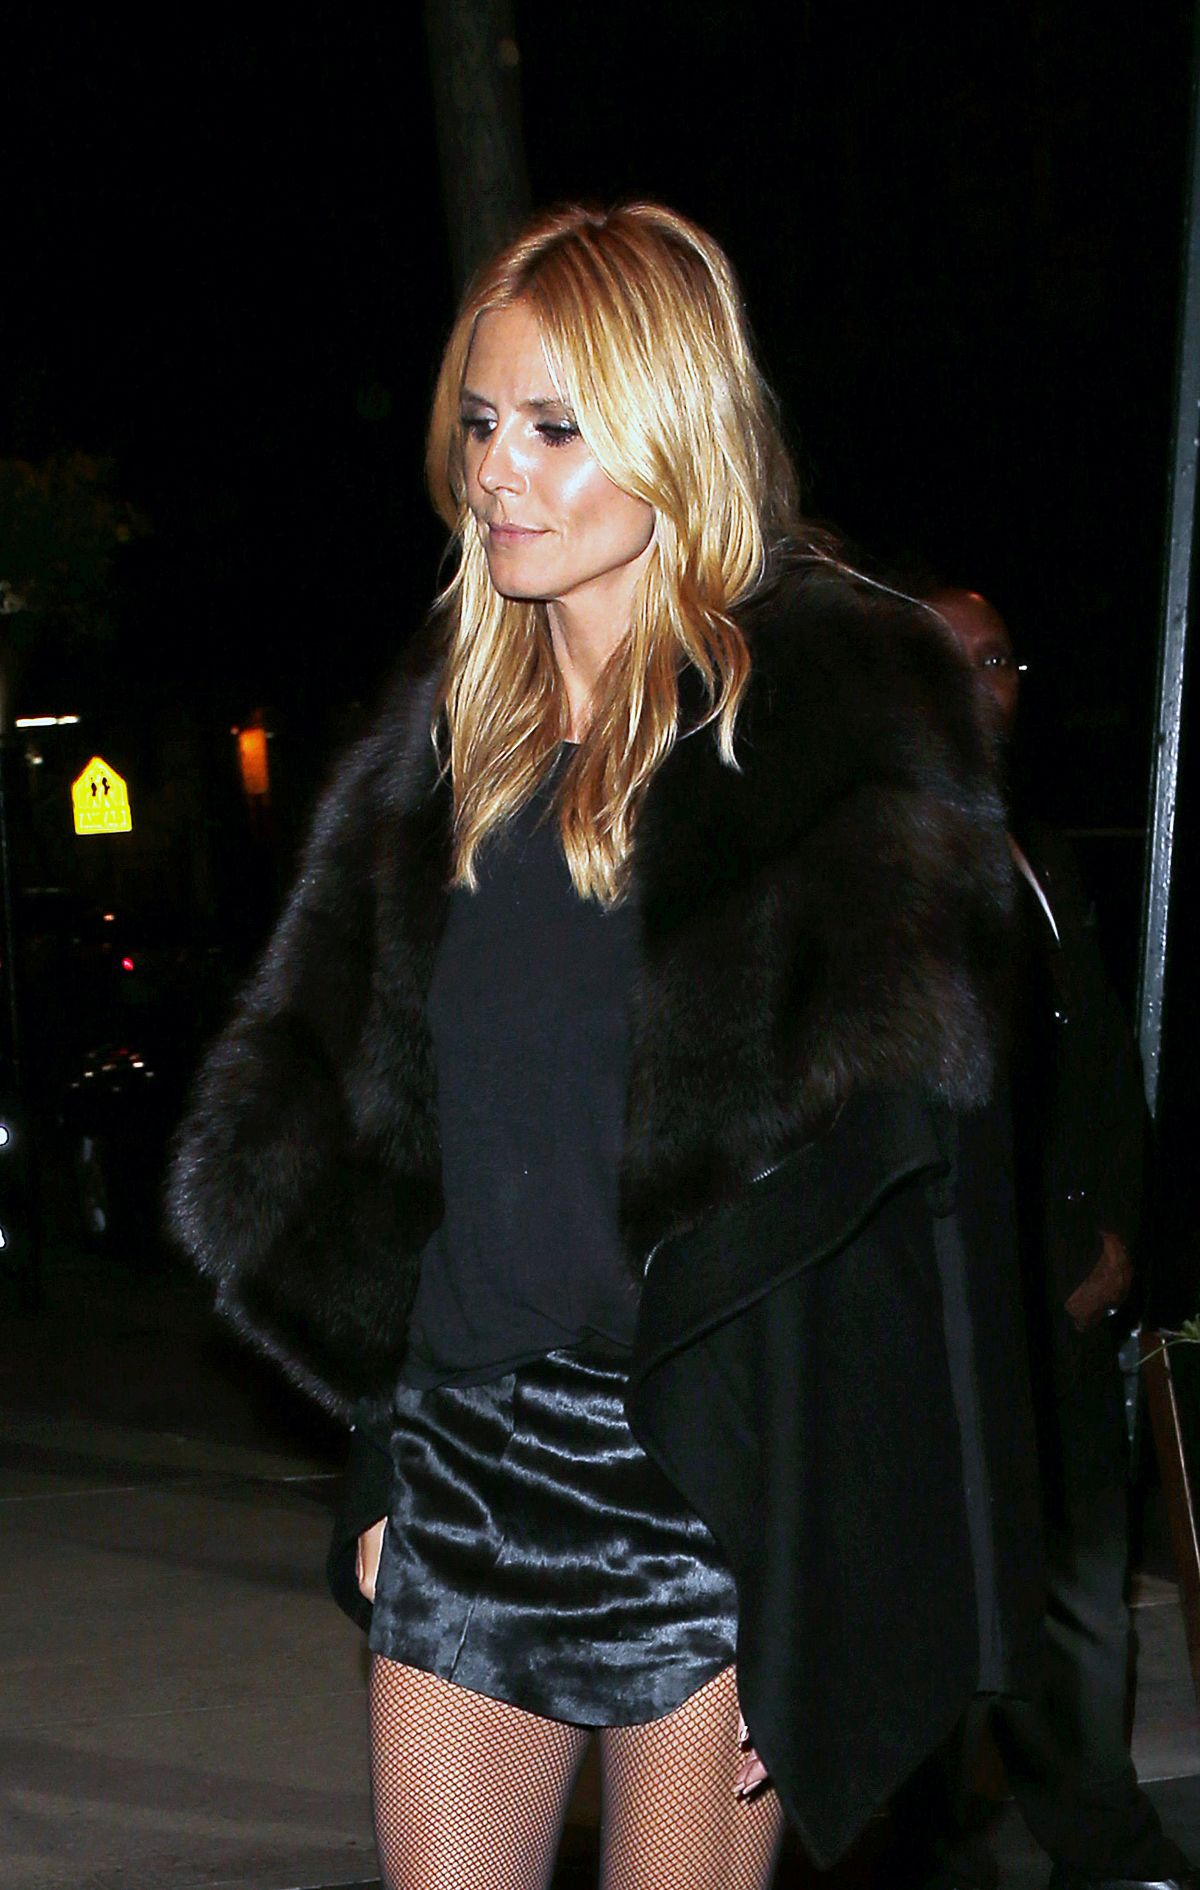 HEIDI KLUM Arrives at The Caryle Hotel in New York